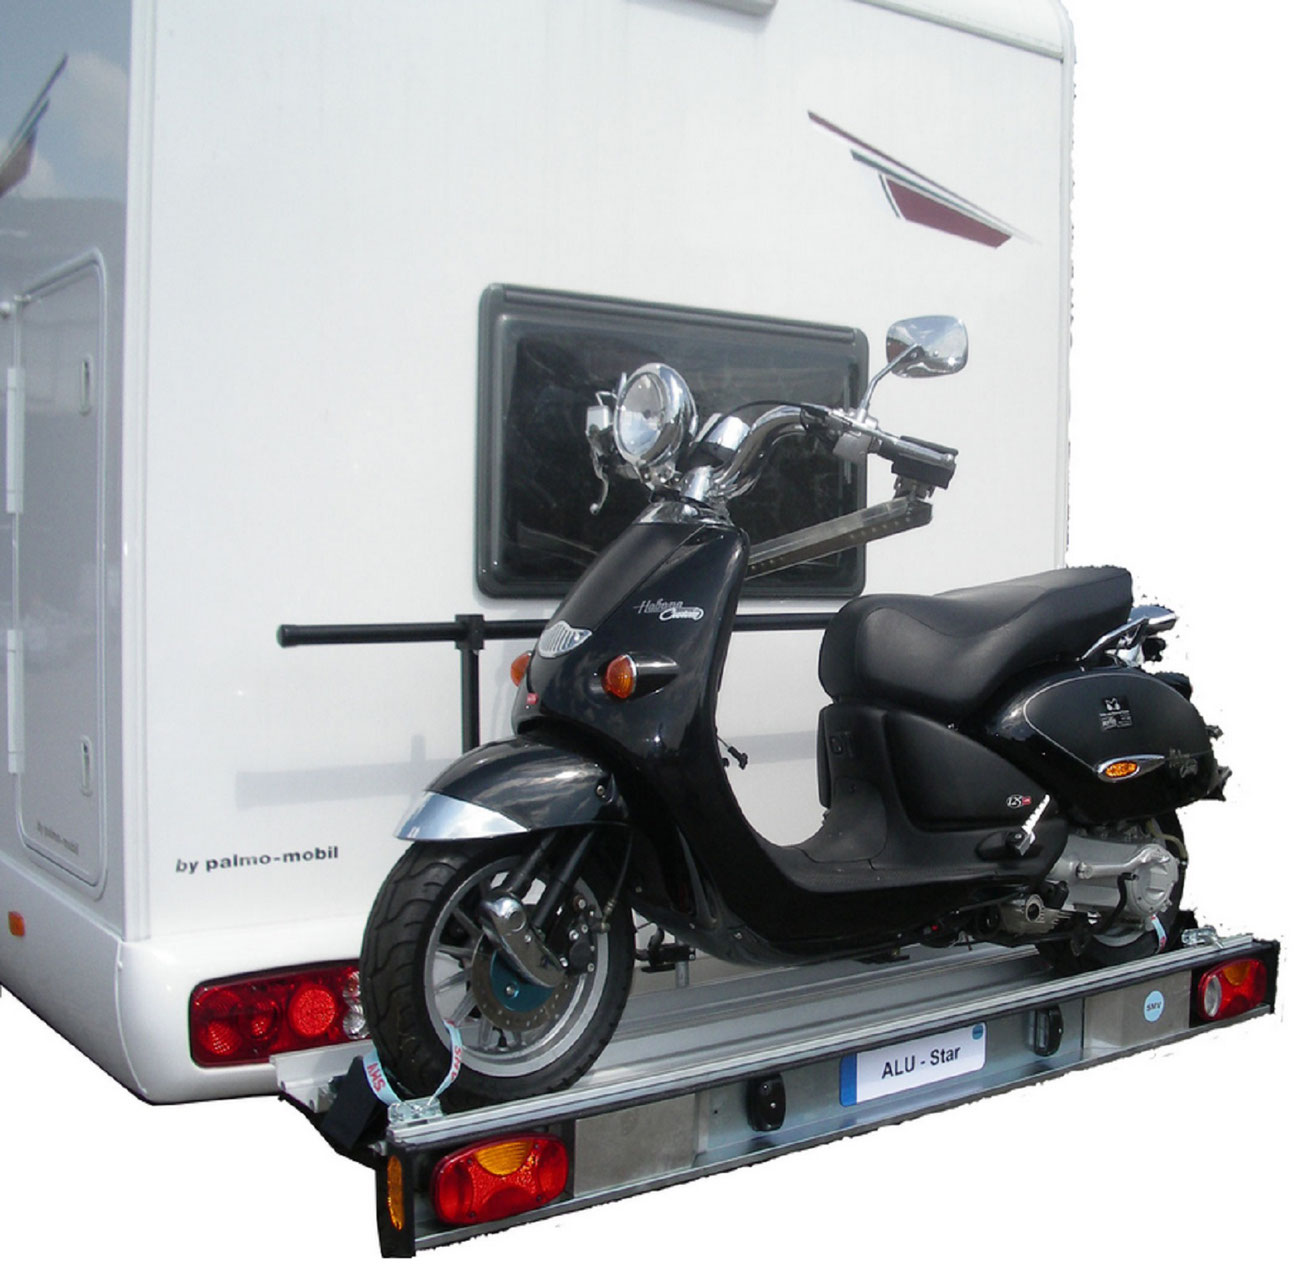 motorradtr ger hecktr ger lastentr ger reisemobile. Black Bedroom Furniture Sets. Home Design Ideas